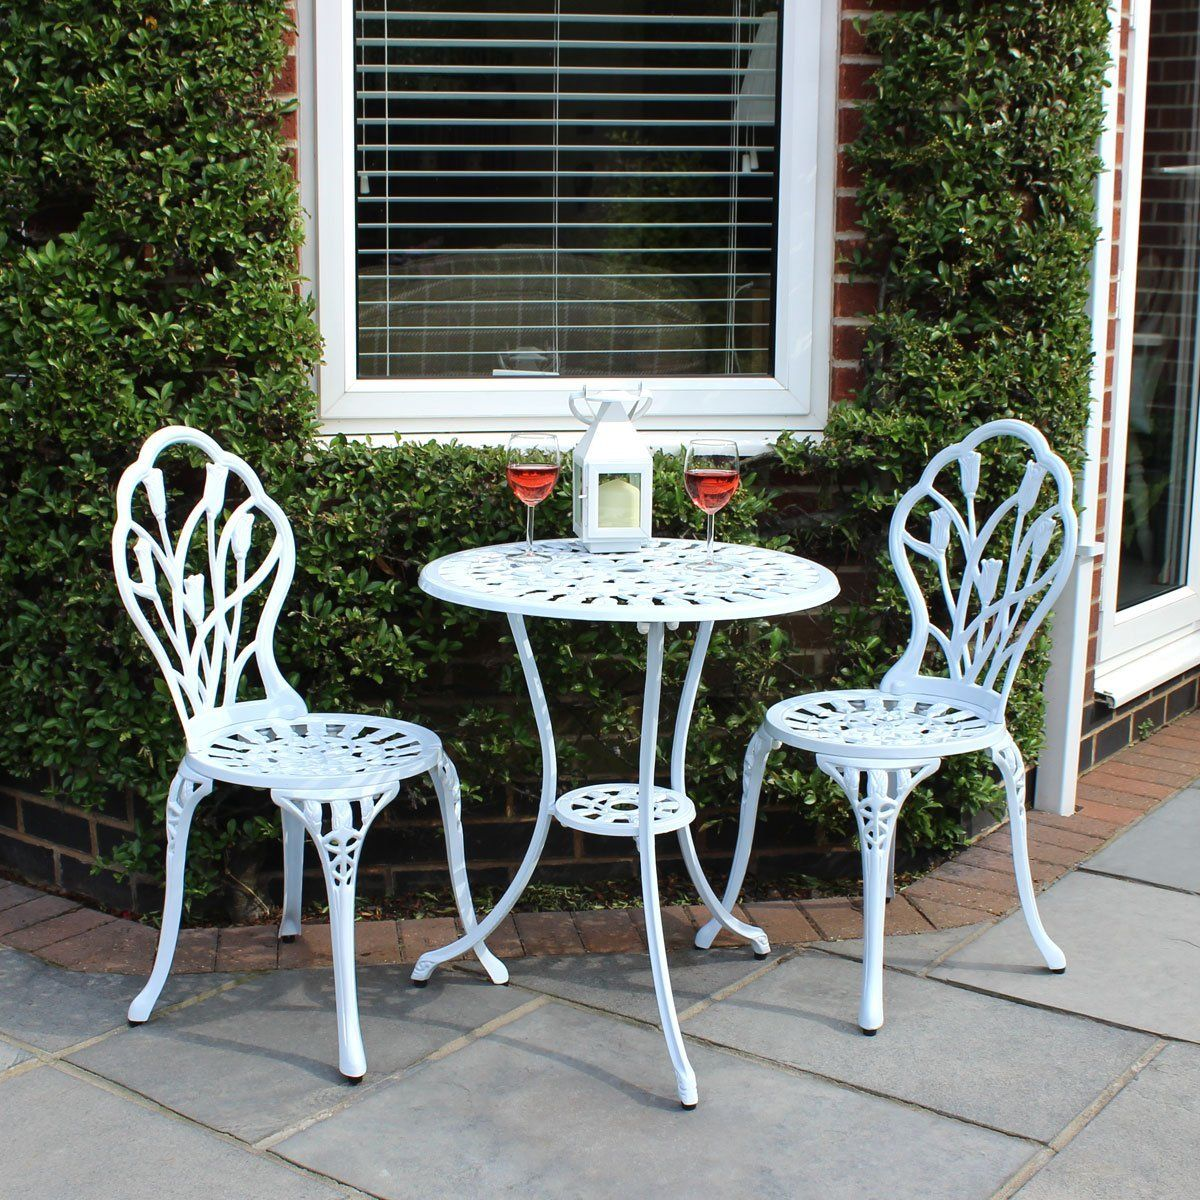 This Charles Bentley Garden 3 Piece Tulip Cast Aluminium Patio Bistro Set Table 2 Chairs